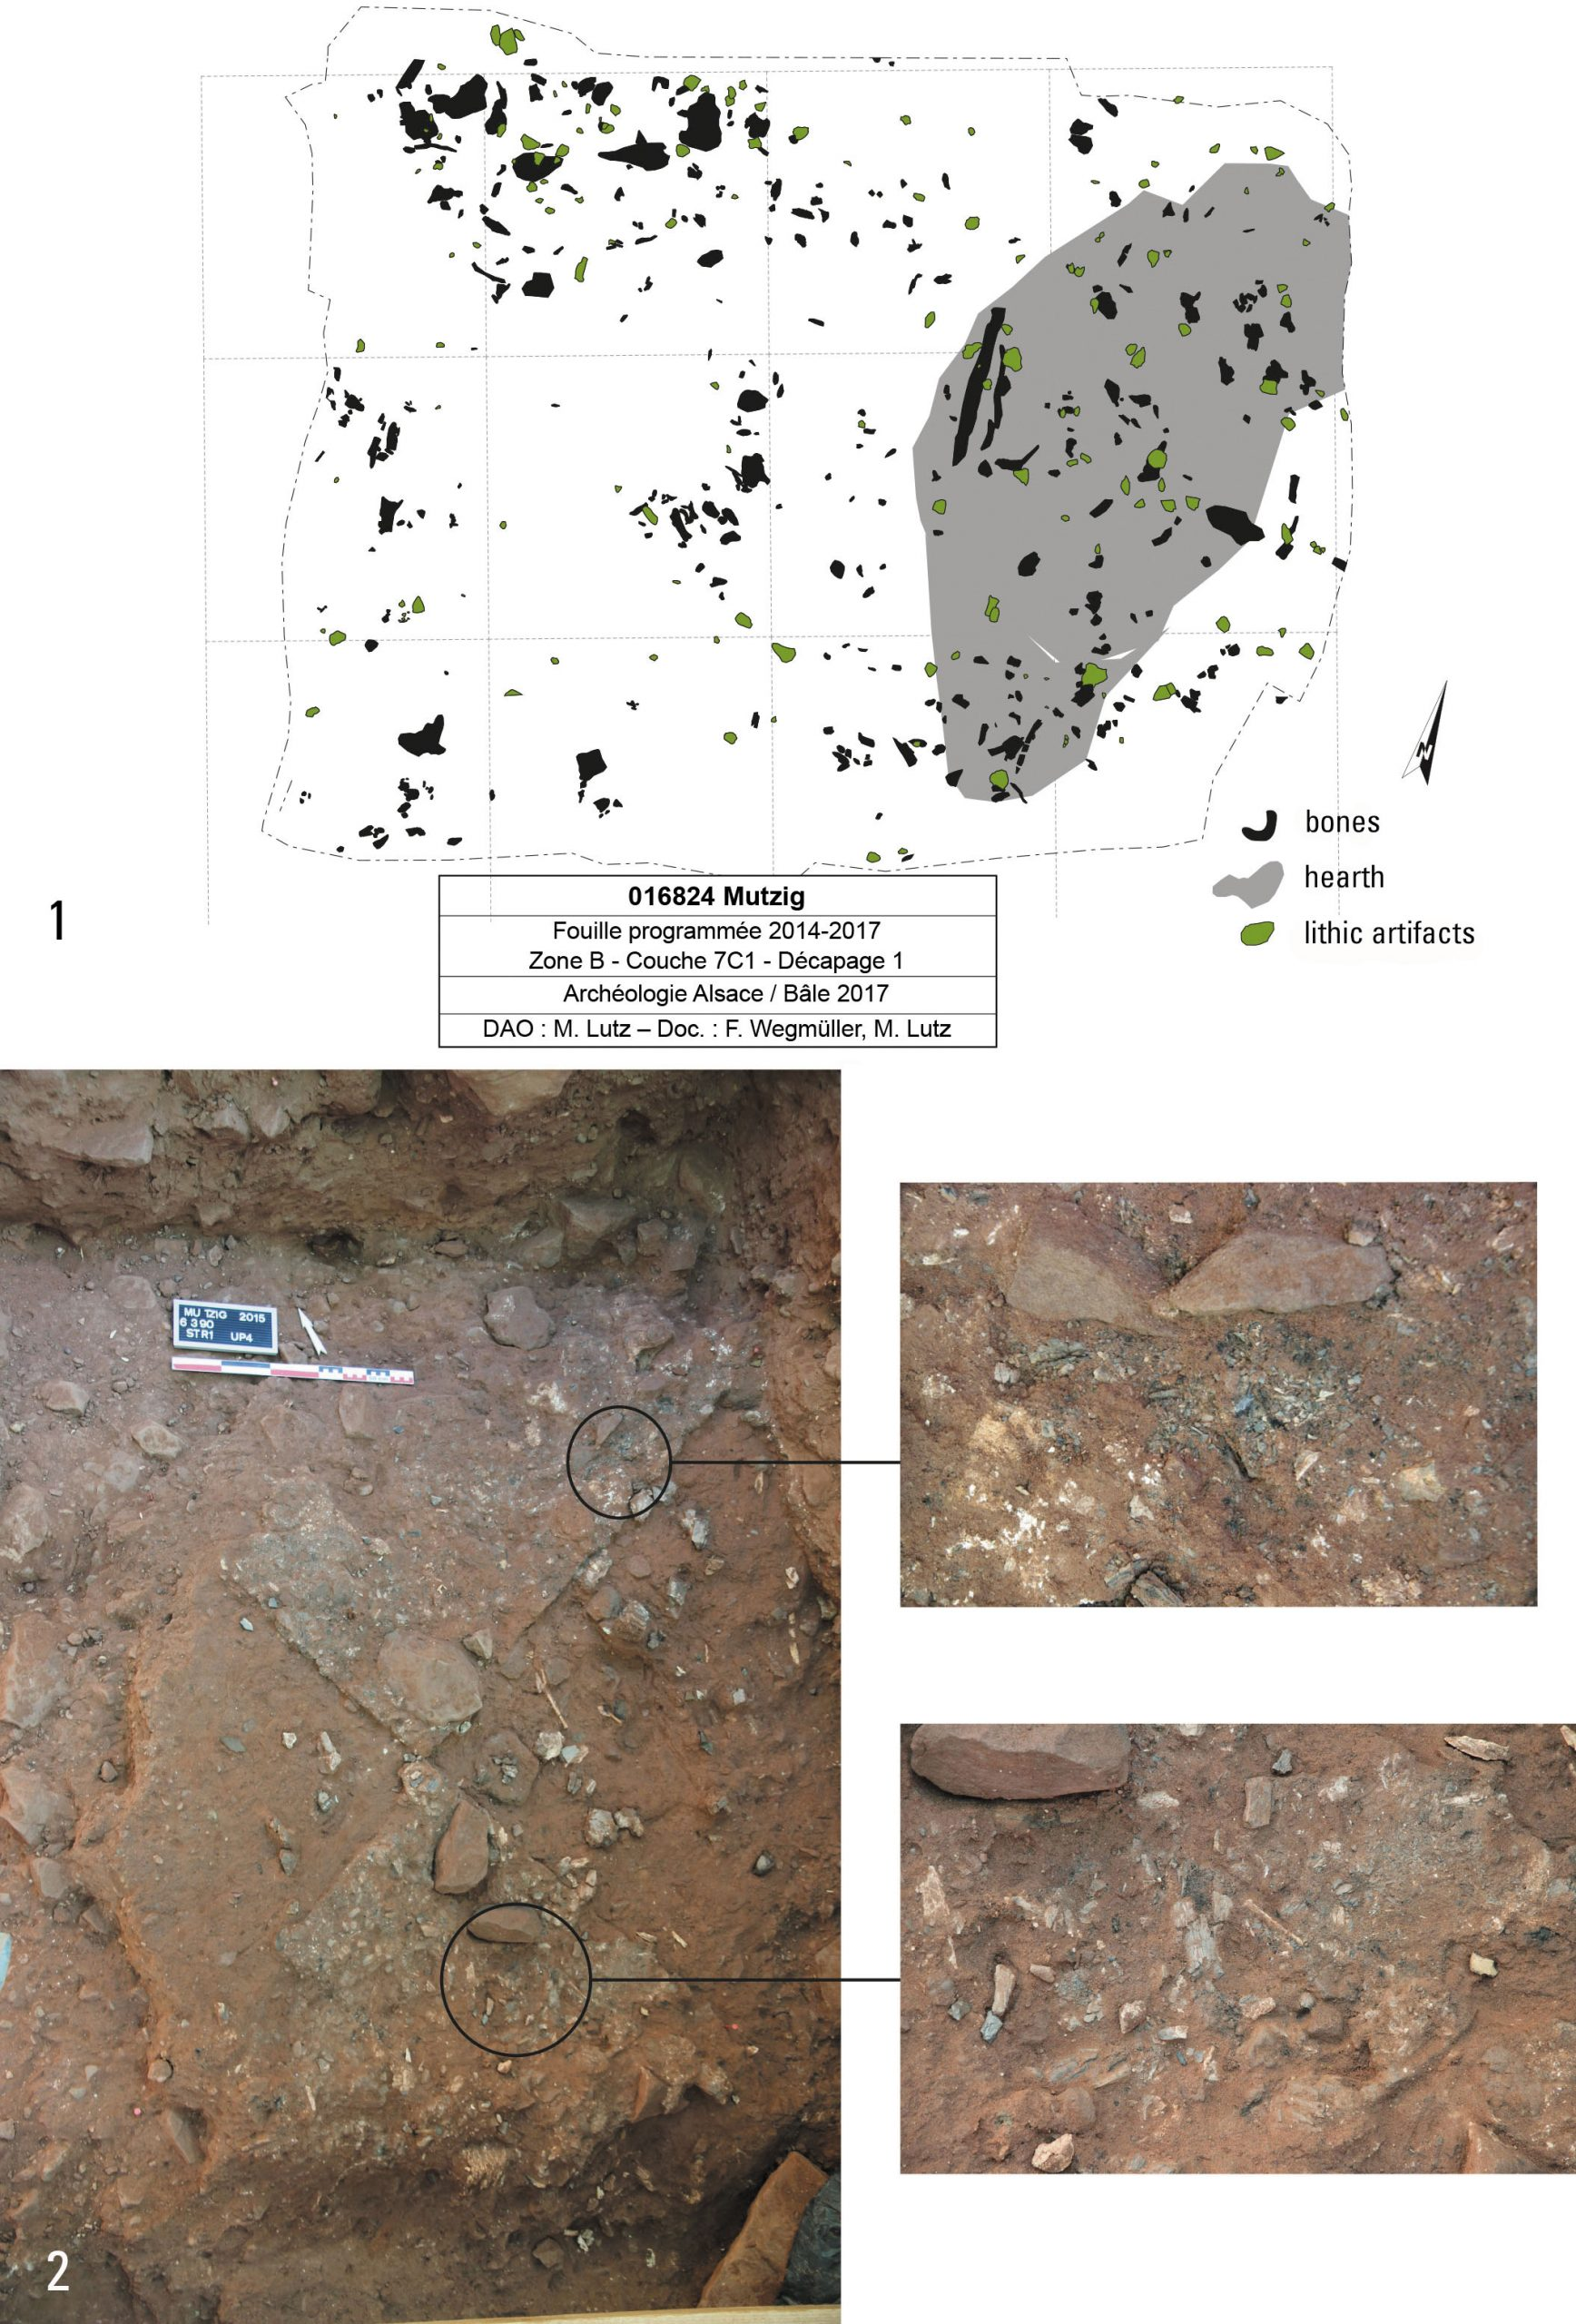 Spatial distribution of remains in layer 7C1 and hearth